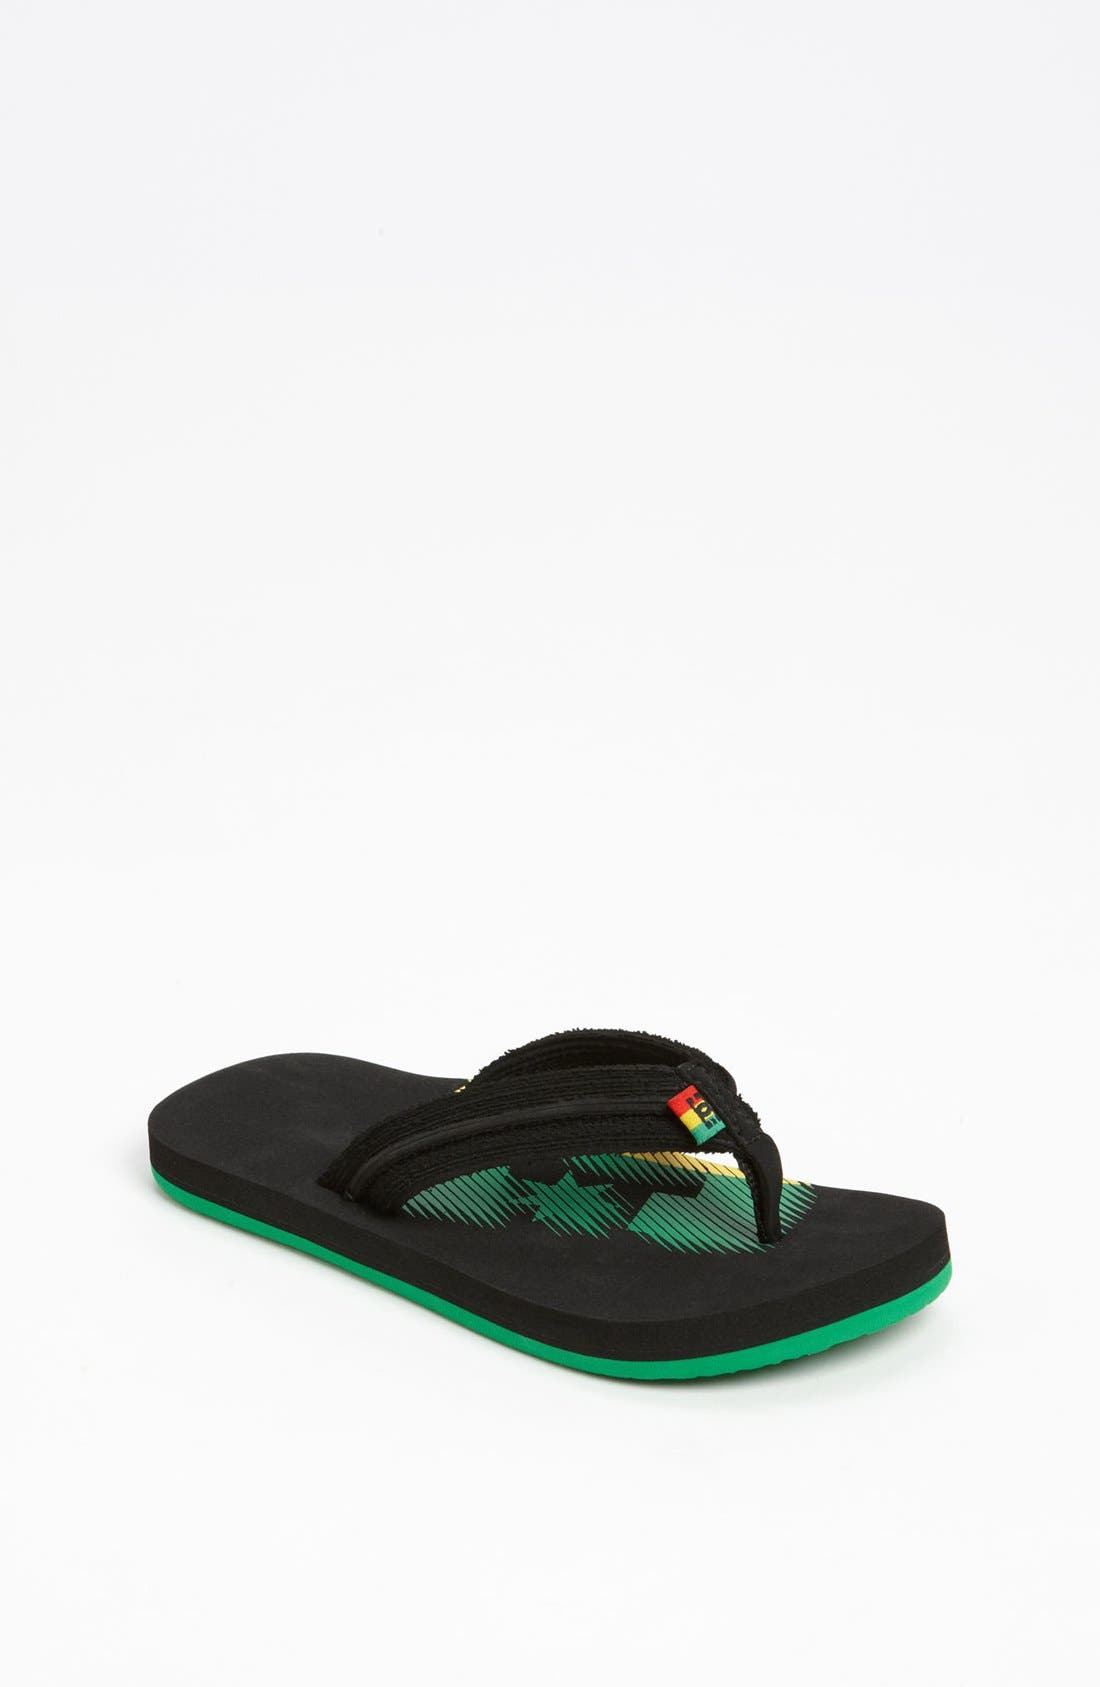 Alternate Image 1 Selected - DC Shoes 'Central' Sandal (Toddler, Little Kid & Big Kid)